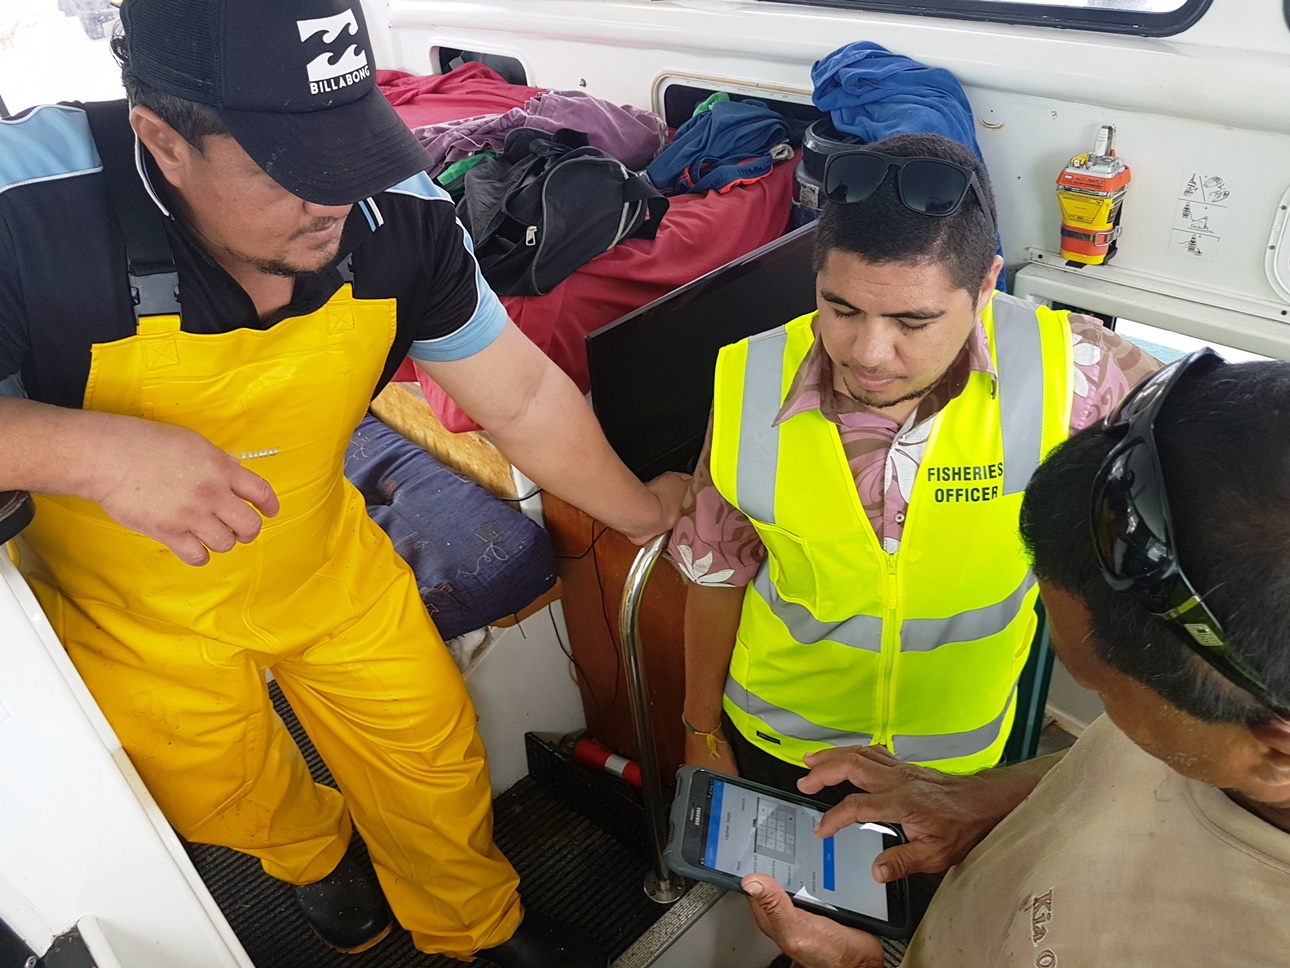 Cook Islands MMR Data Manager Marino Wichman, flanked by tuna fishing captains Thomas Kafoa and Itaaka Atitoa from Ocean Fresh Ltd., Rarotonga, Cook Islands, testing the OnBoard e-Reporting app.